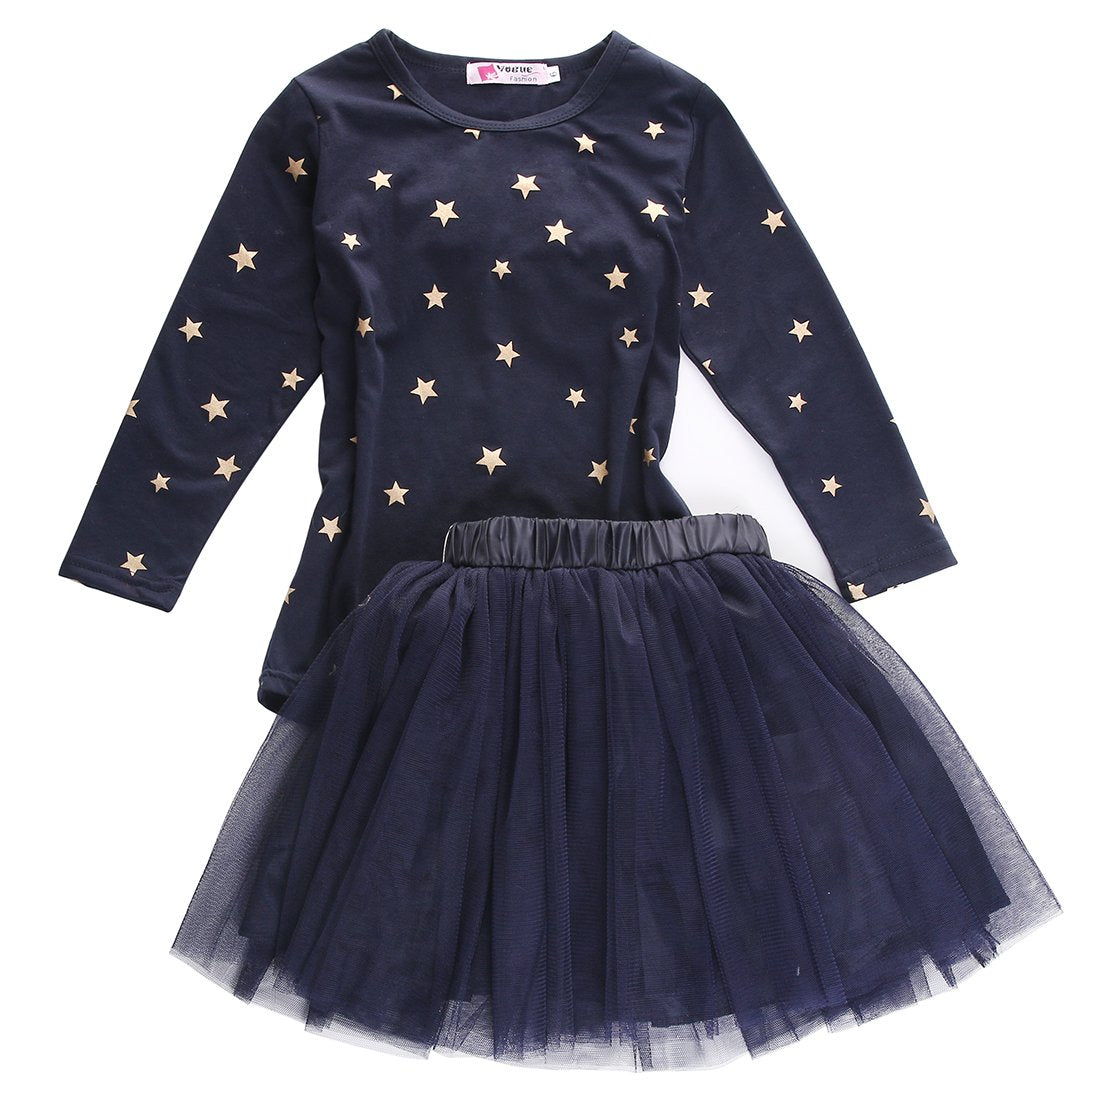 2pcs Baby Girls Party Star Printed Long Sleeves Shirt Bow Tulle Short Skirts Tutu Outfits Dress Clothes  UpCube- upcube